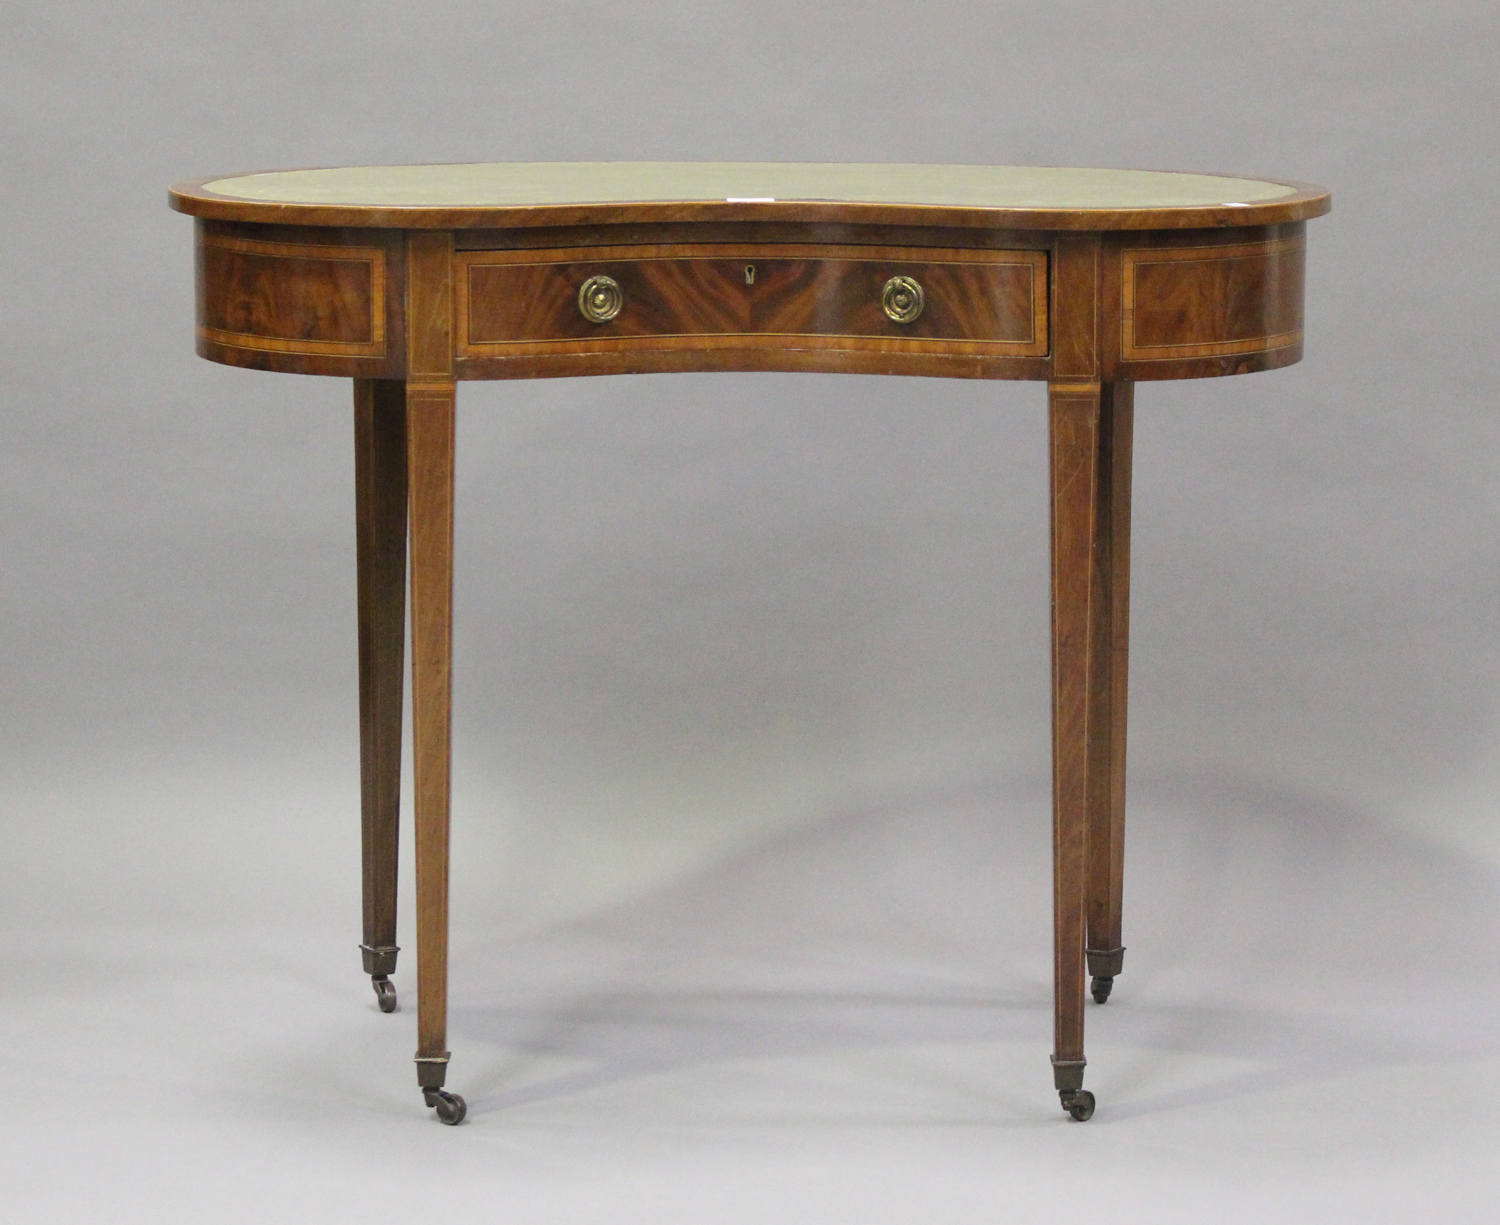 An Edwardian mahogany kidney shaped writing table, crossbanded in satinwood, fitted with a single